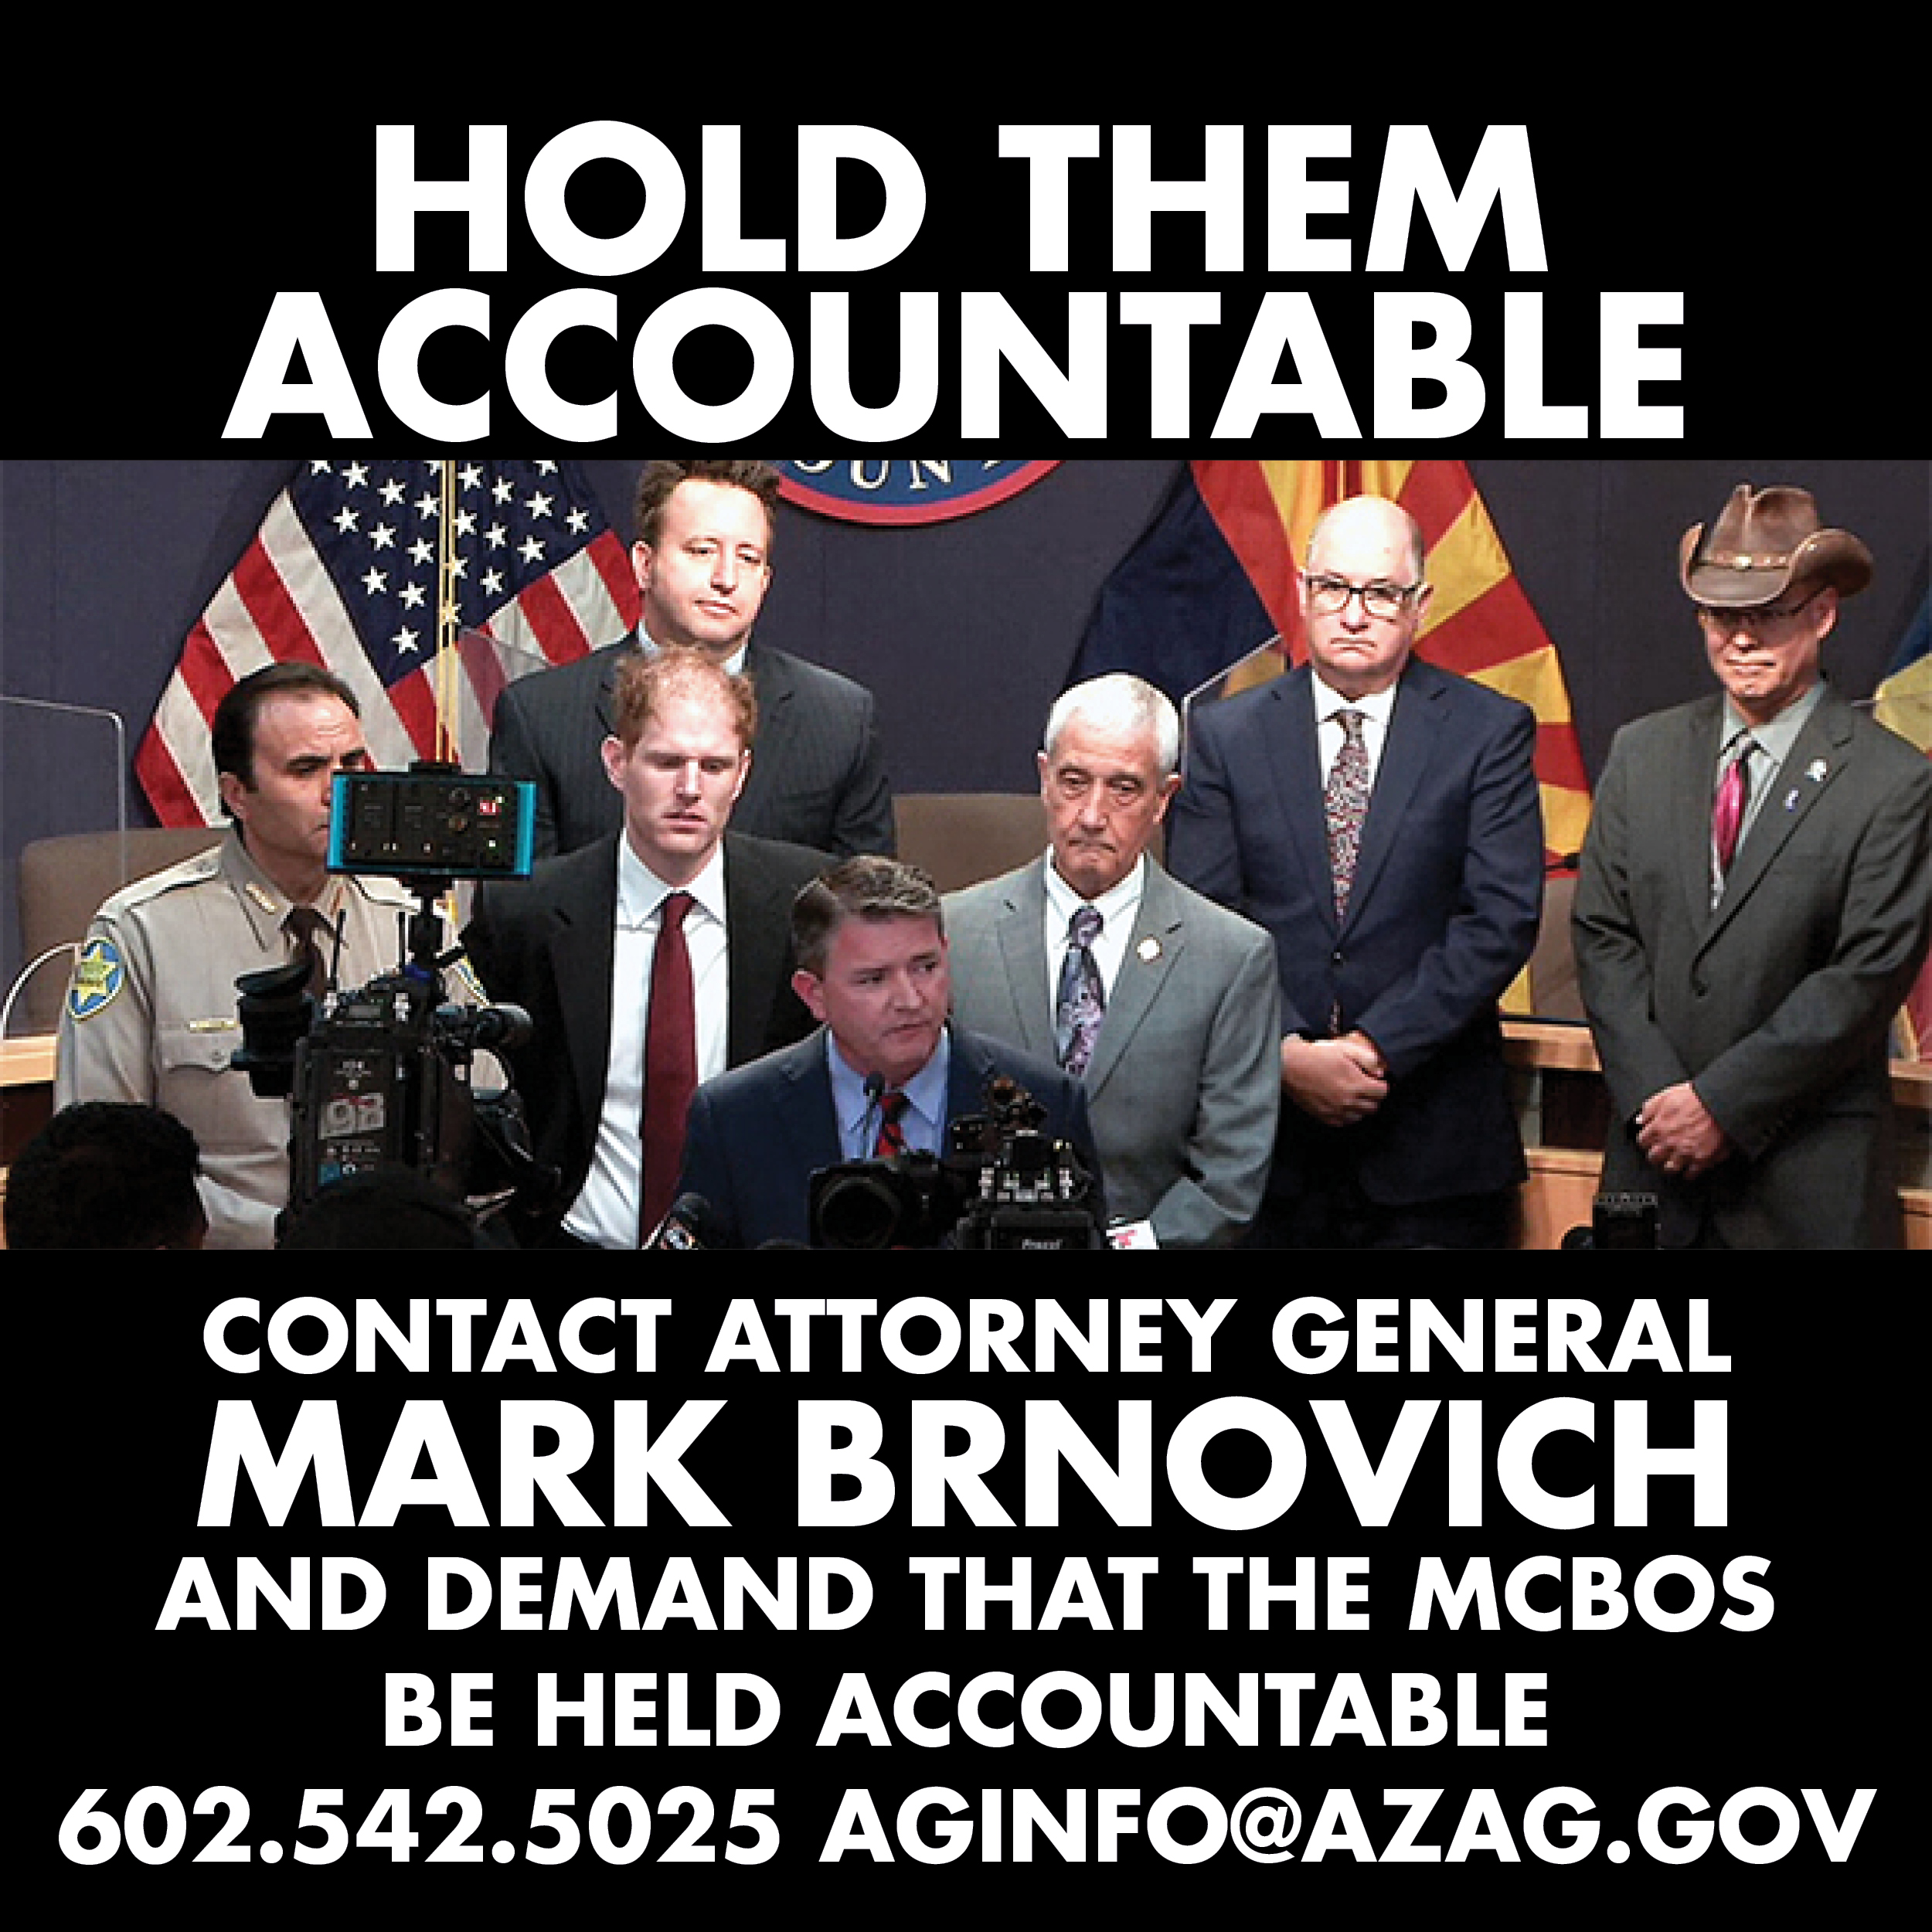 Hold Them Accountable